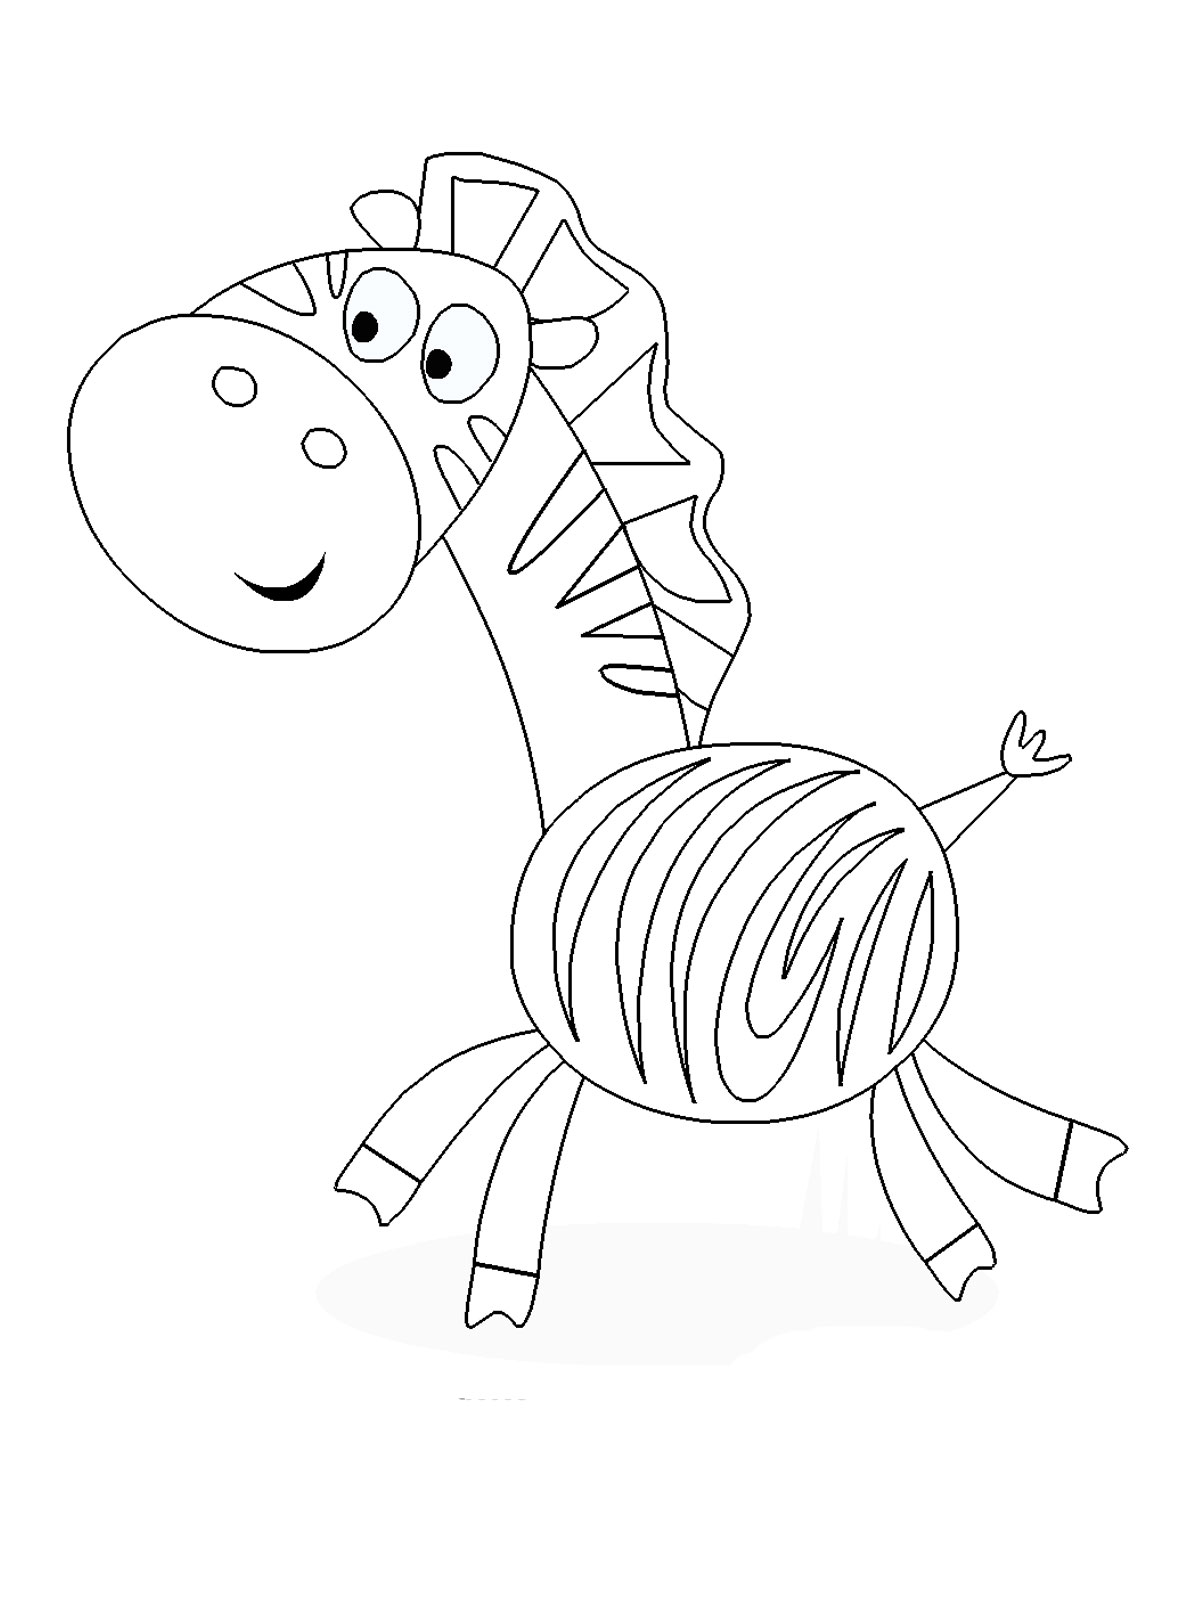 online coloring pages for kids free printable cinderella coloring pages for kids online kids for coloring pages